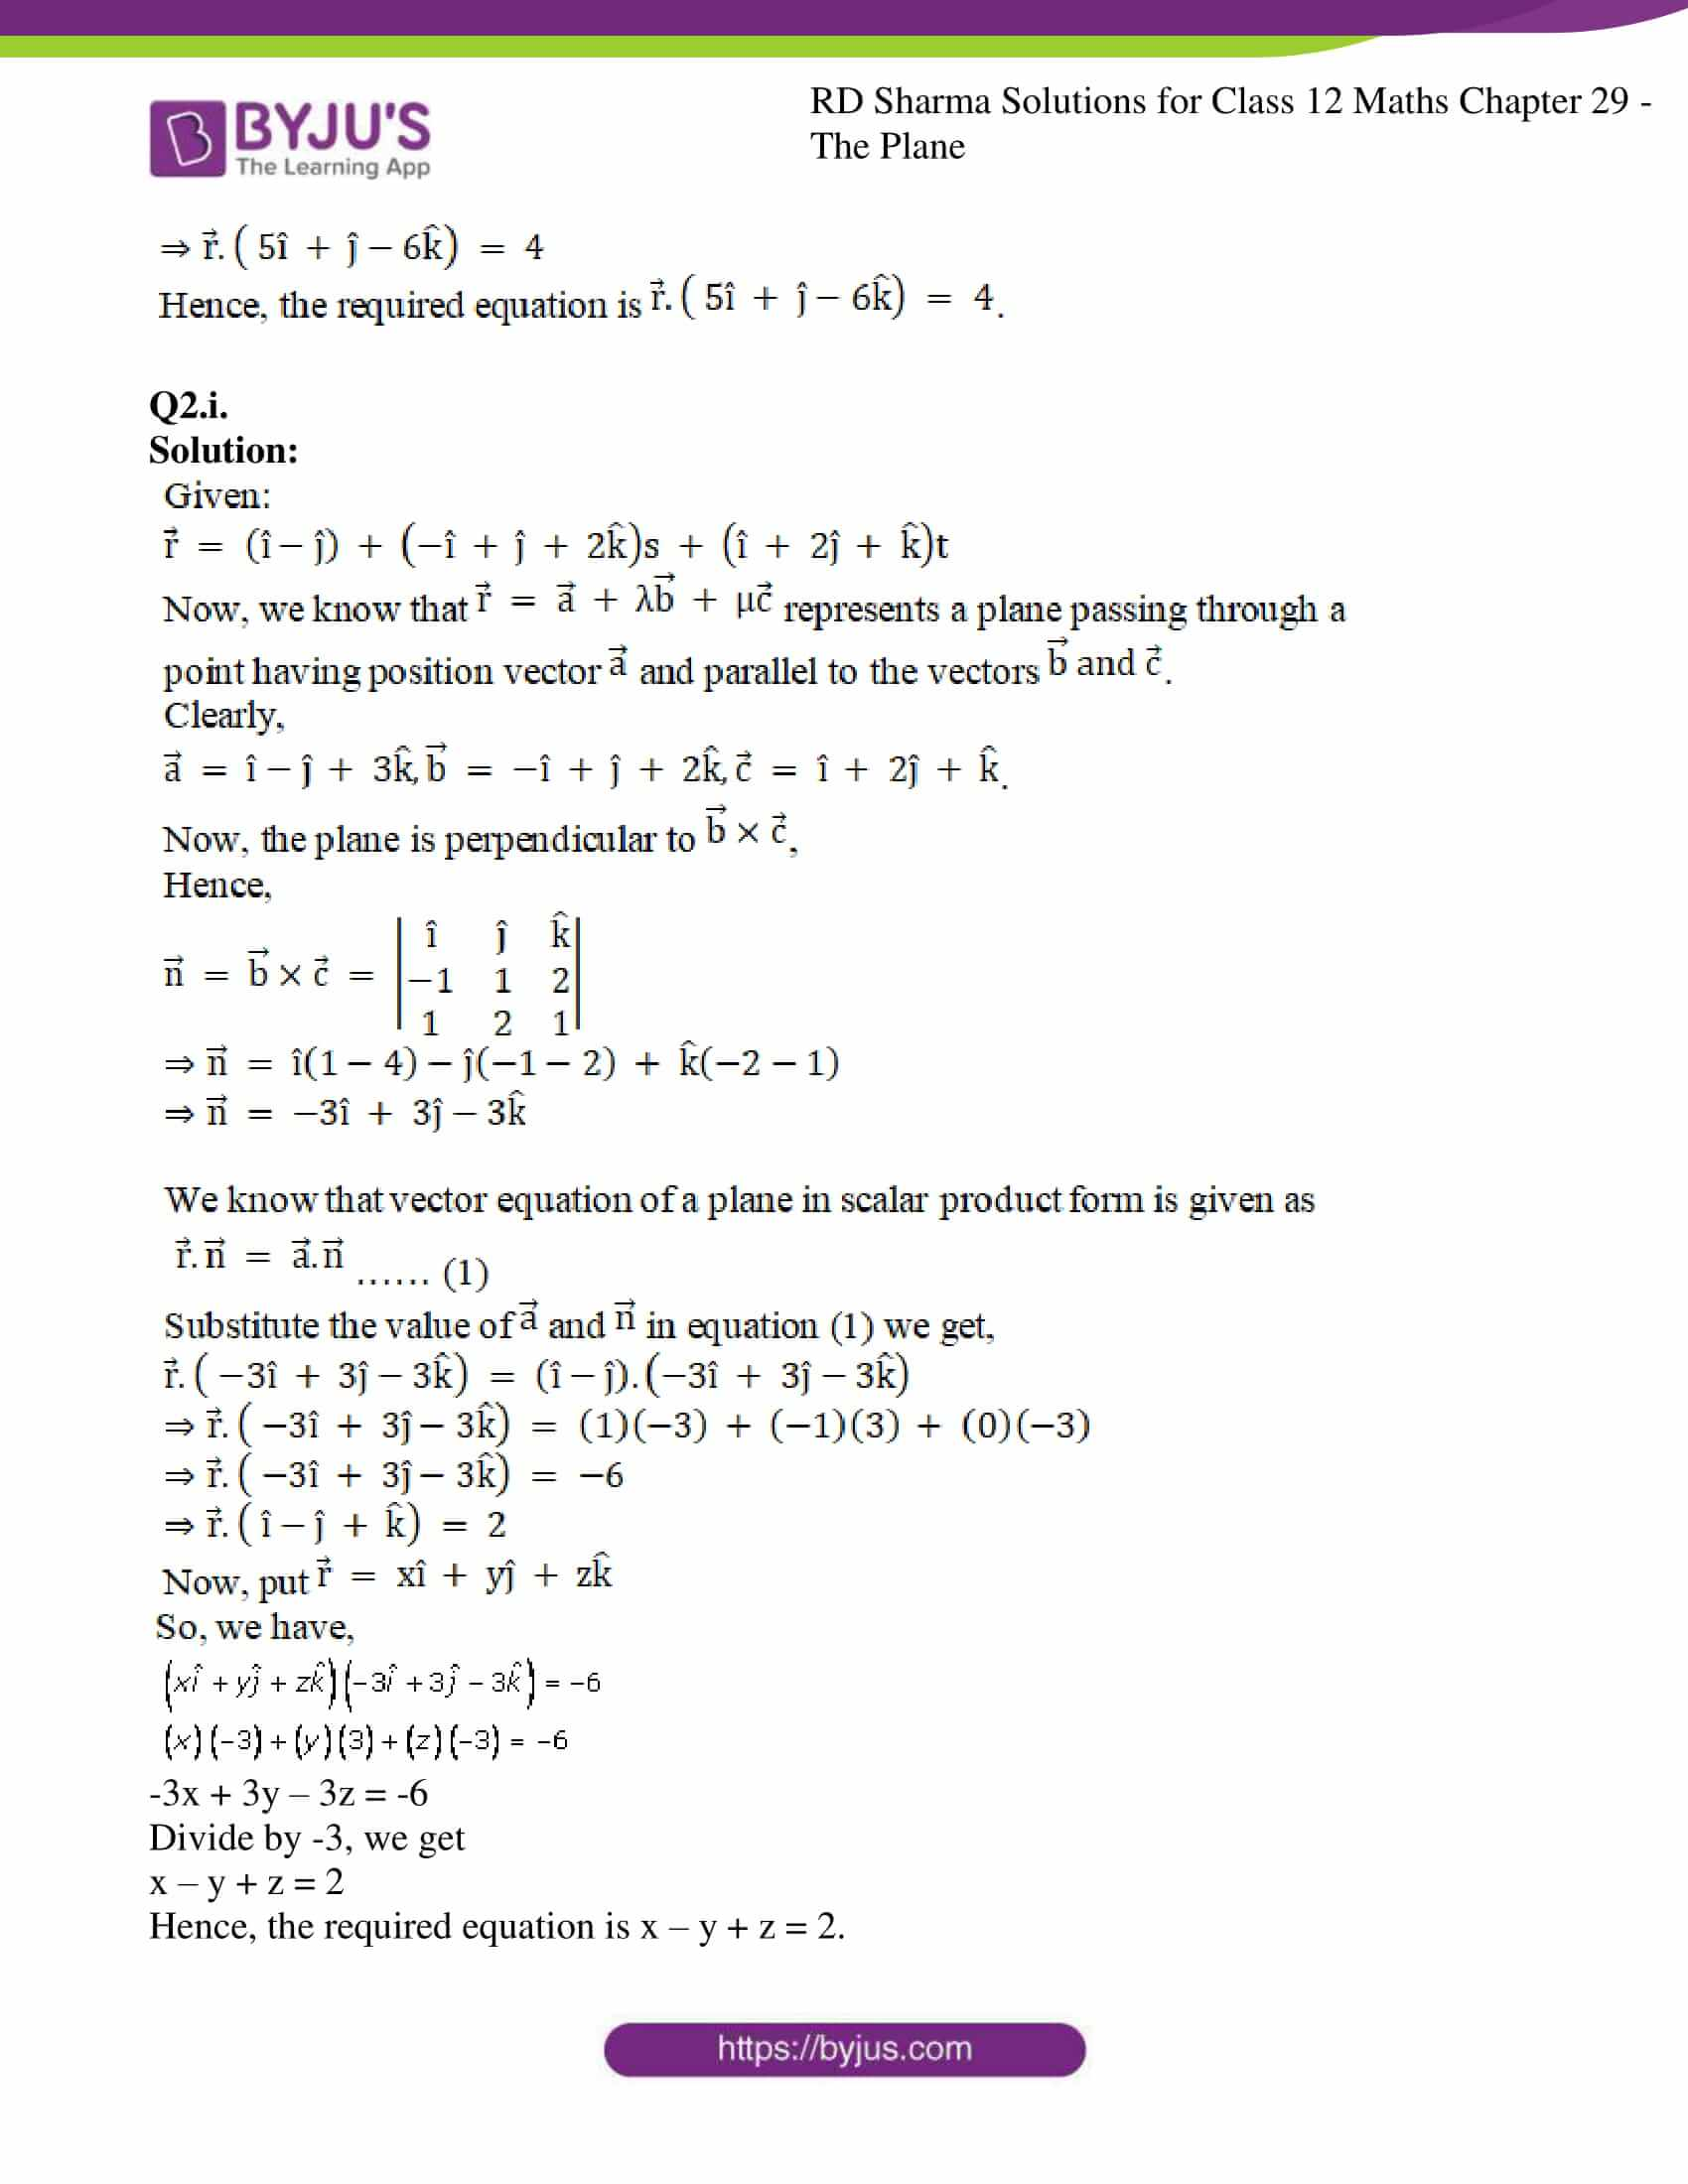 rd sharma solutions for class 12 maths chapter 29 ex 7 4